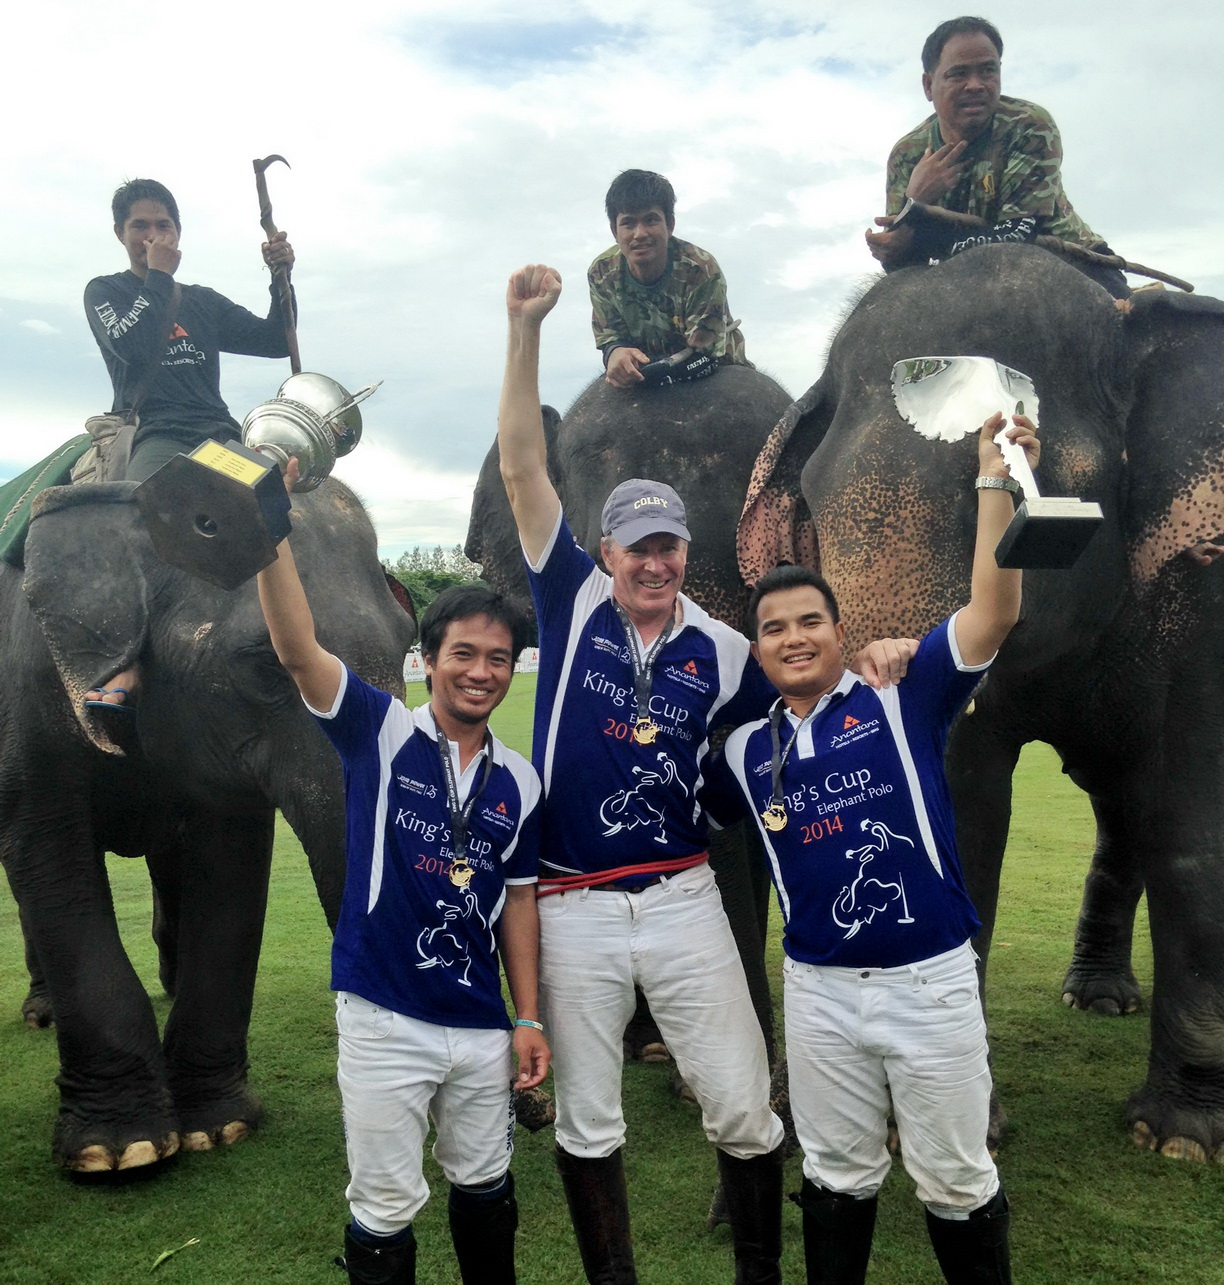 King Power wins Kings Cup Elephant Polo 2014